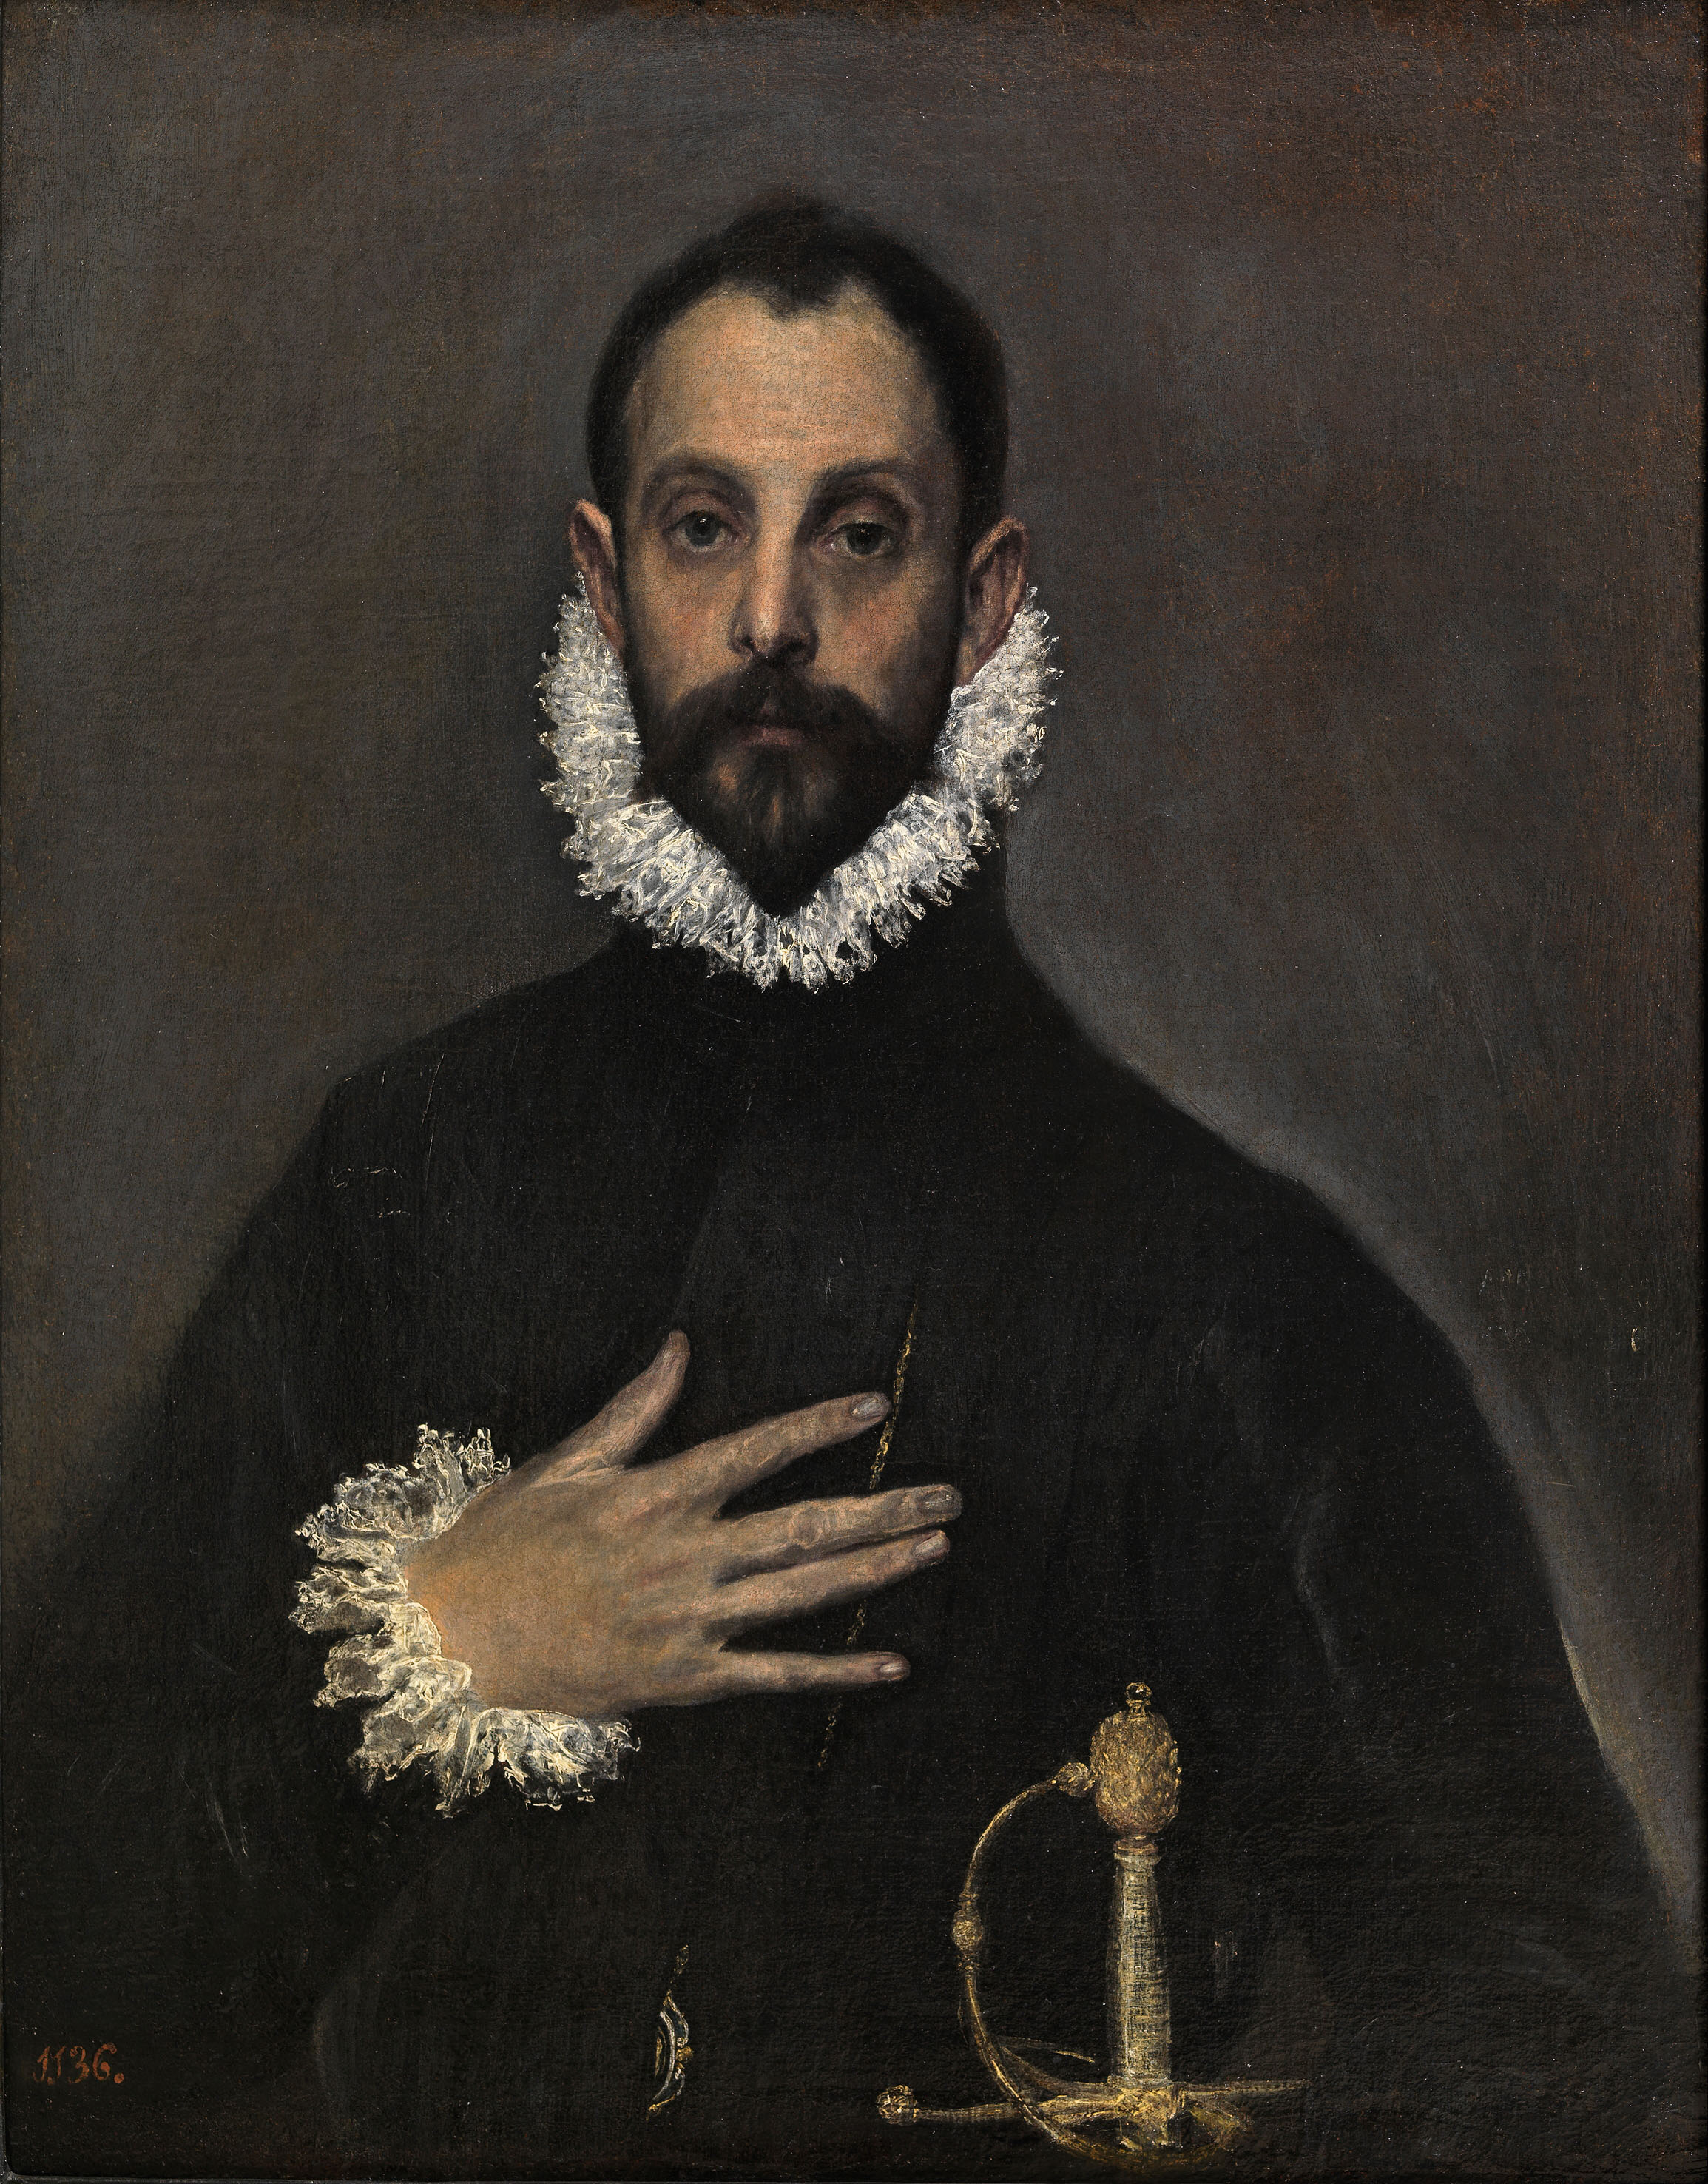 Nobleman with his Hand on his Chest, El Greco